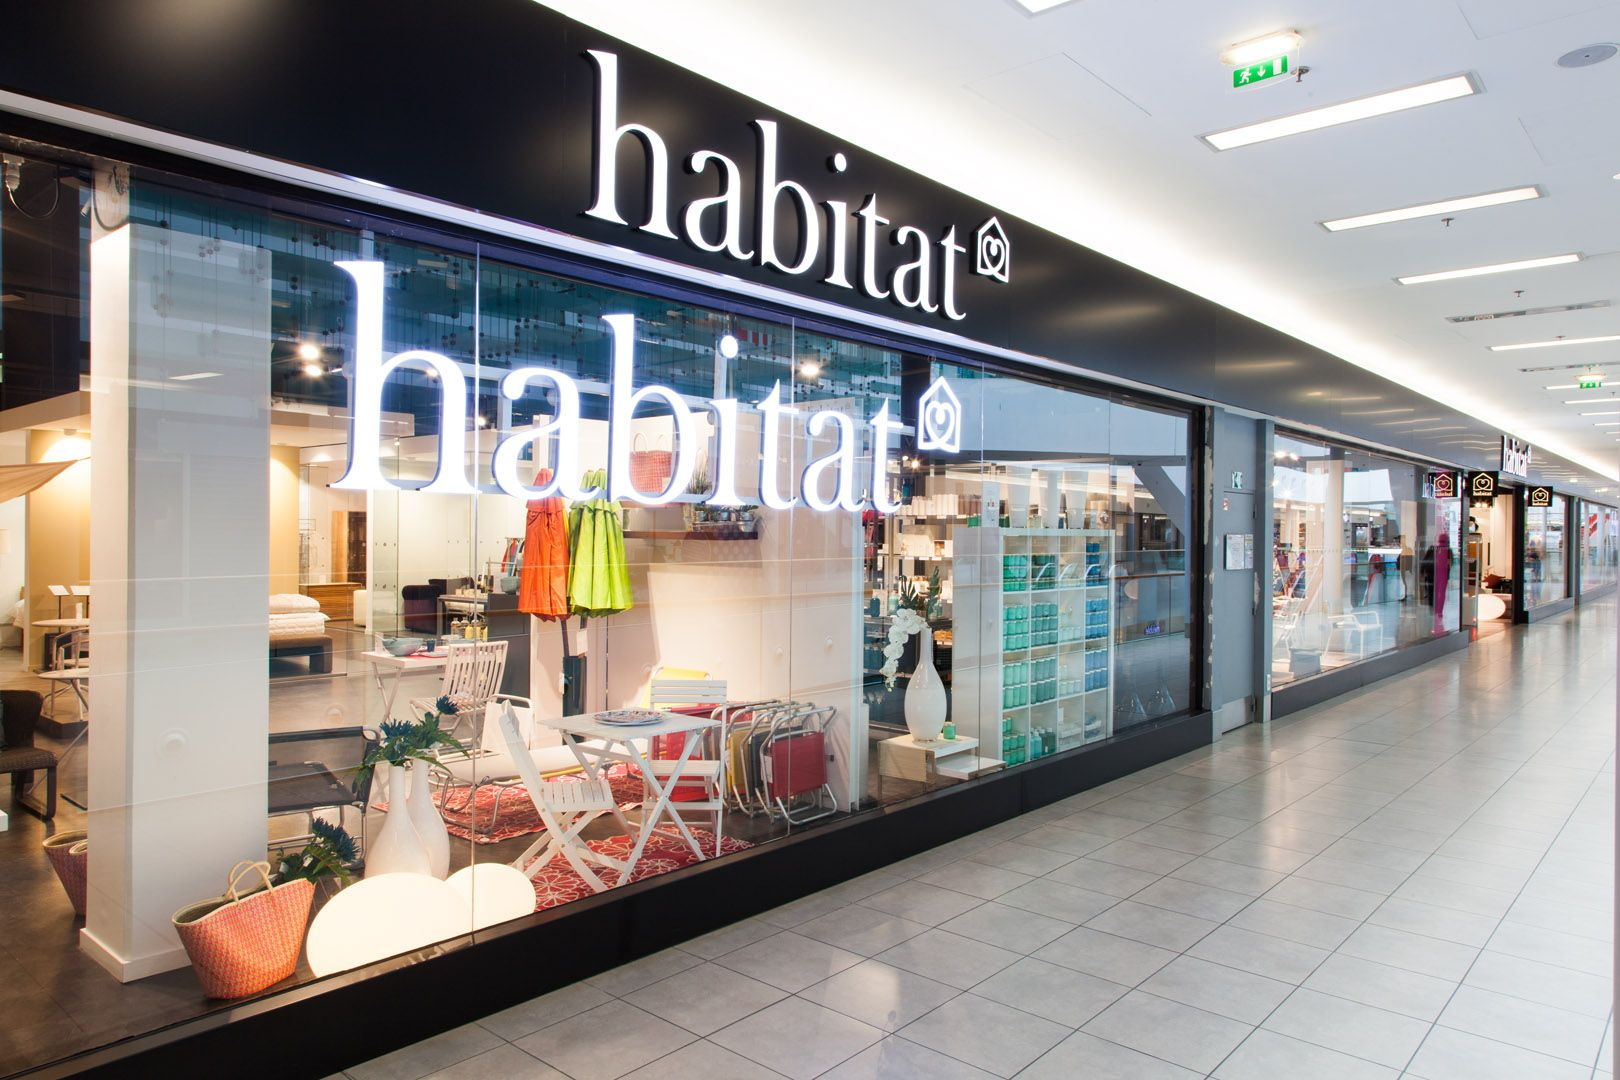 Salon Habitat Paris Magasin Habitat Paris Meubles Modernes Actus Bons Plans